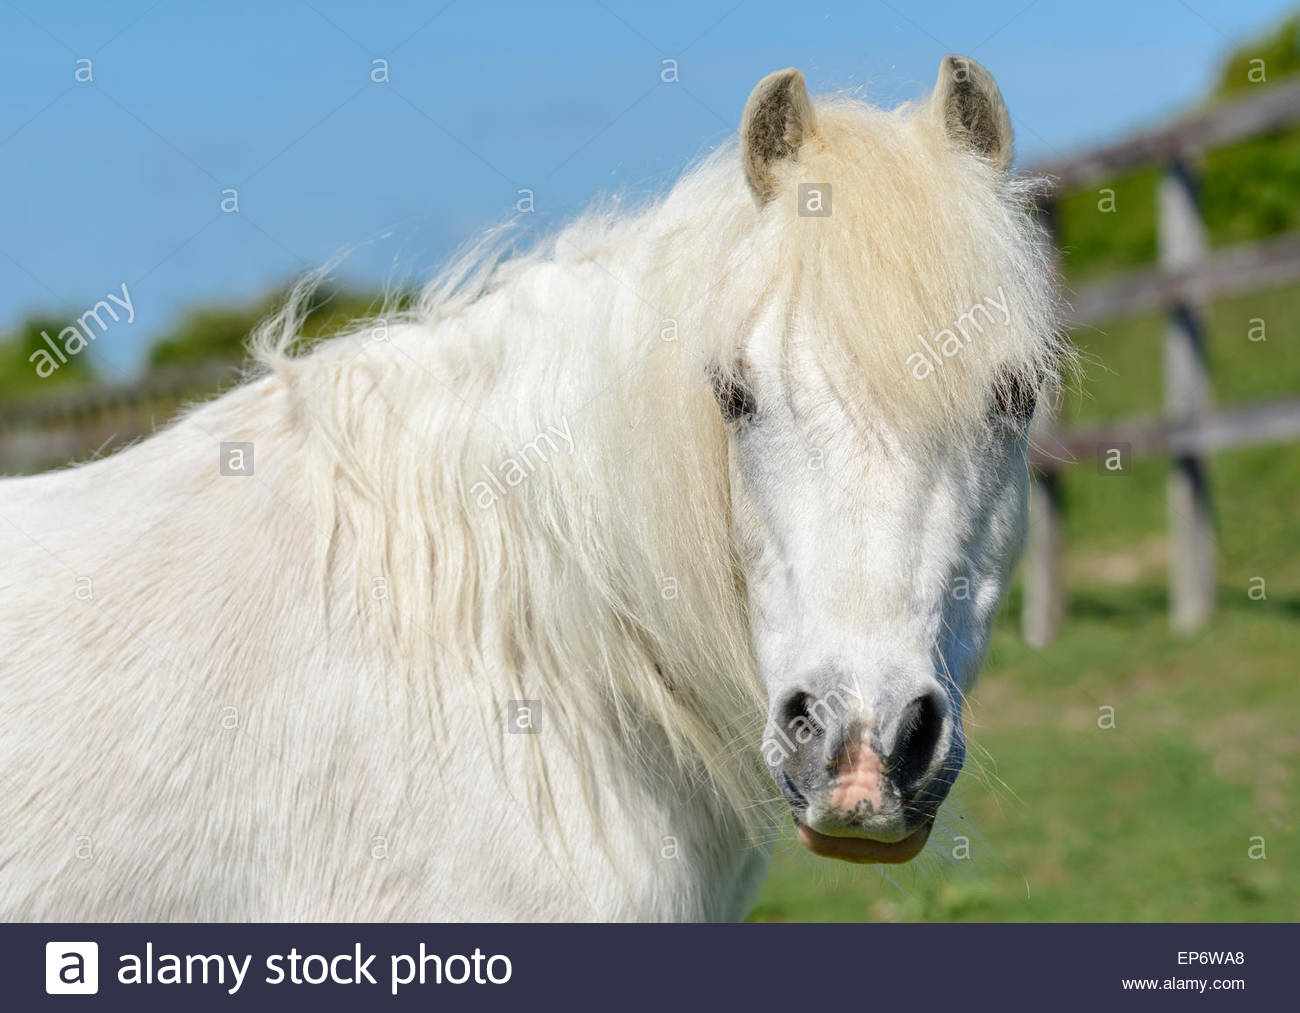 Domestic white horse in a field looking at the camera. - Stock Image